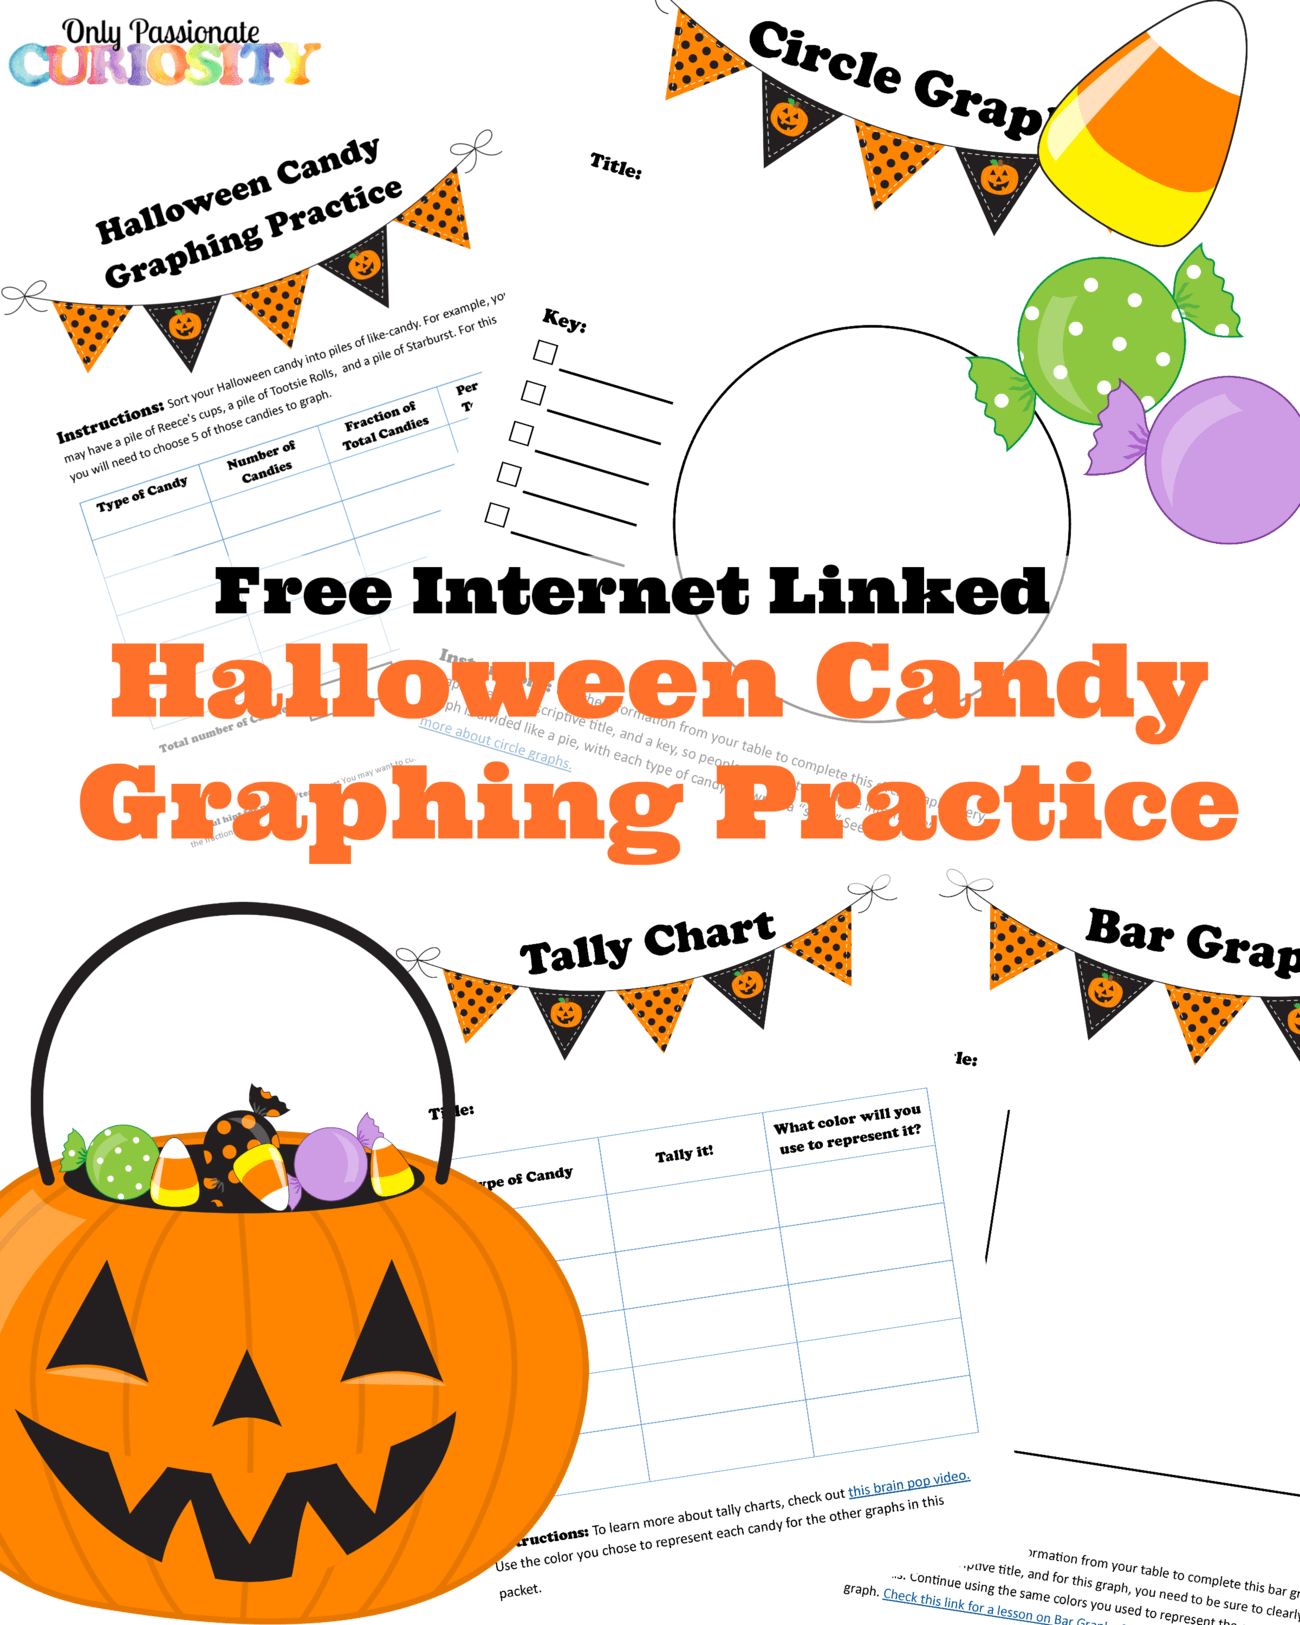 Halloween Candy Graphing Practice